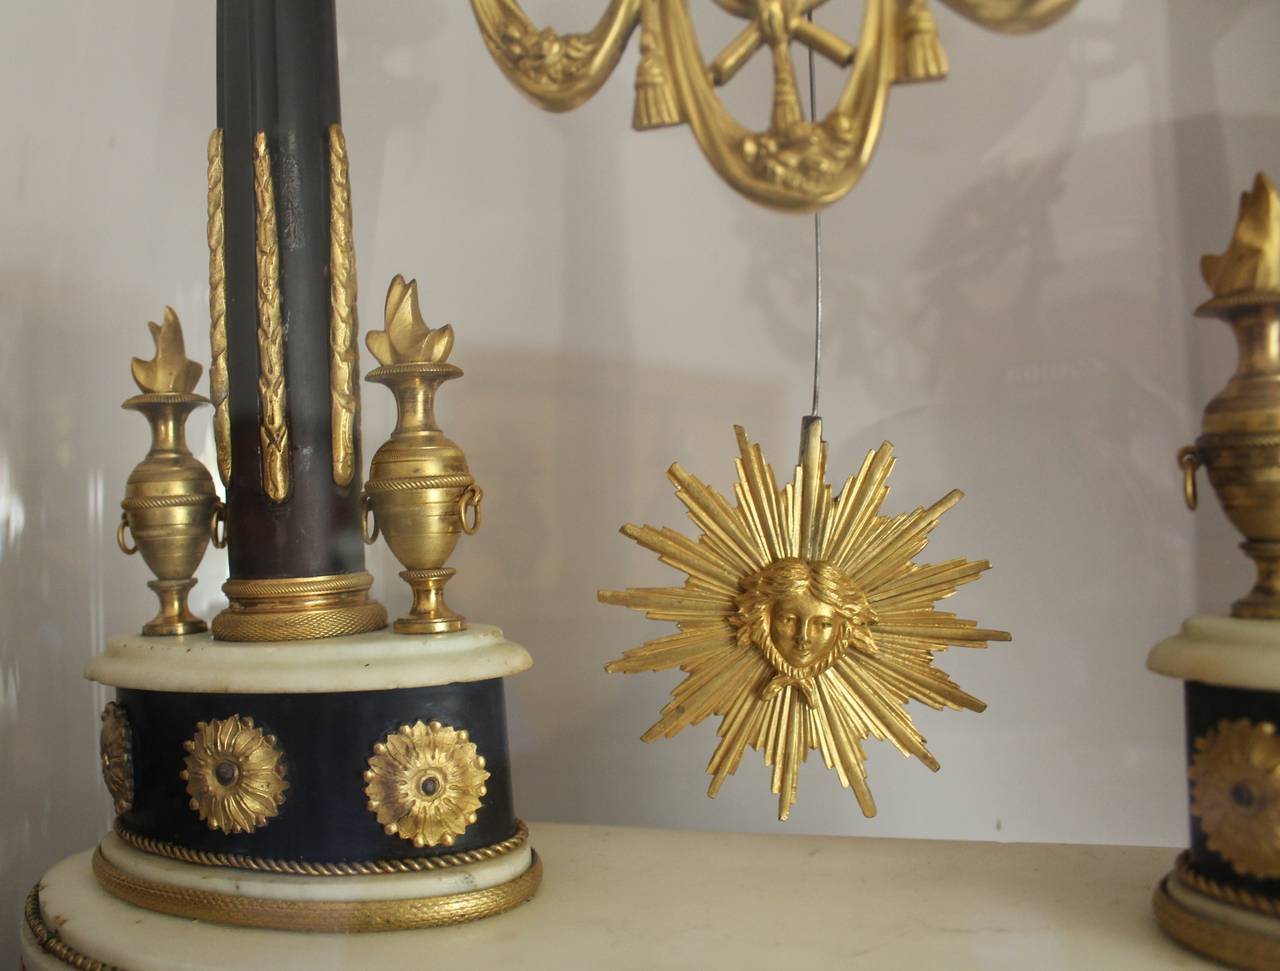 French Empire Period Marble and Ormolu Clock, Early 19th Century For Sale 6